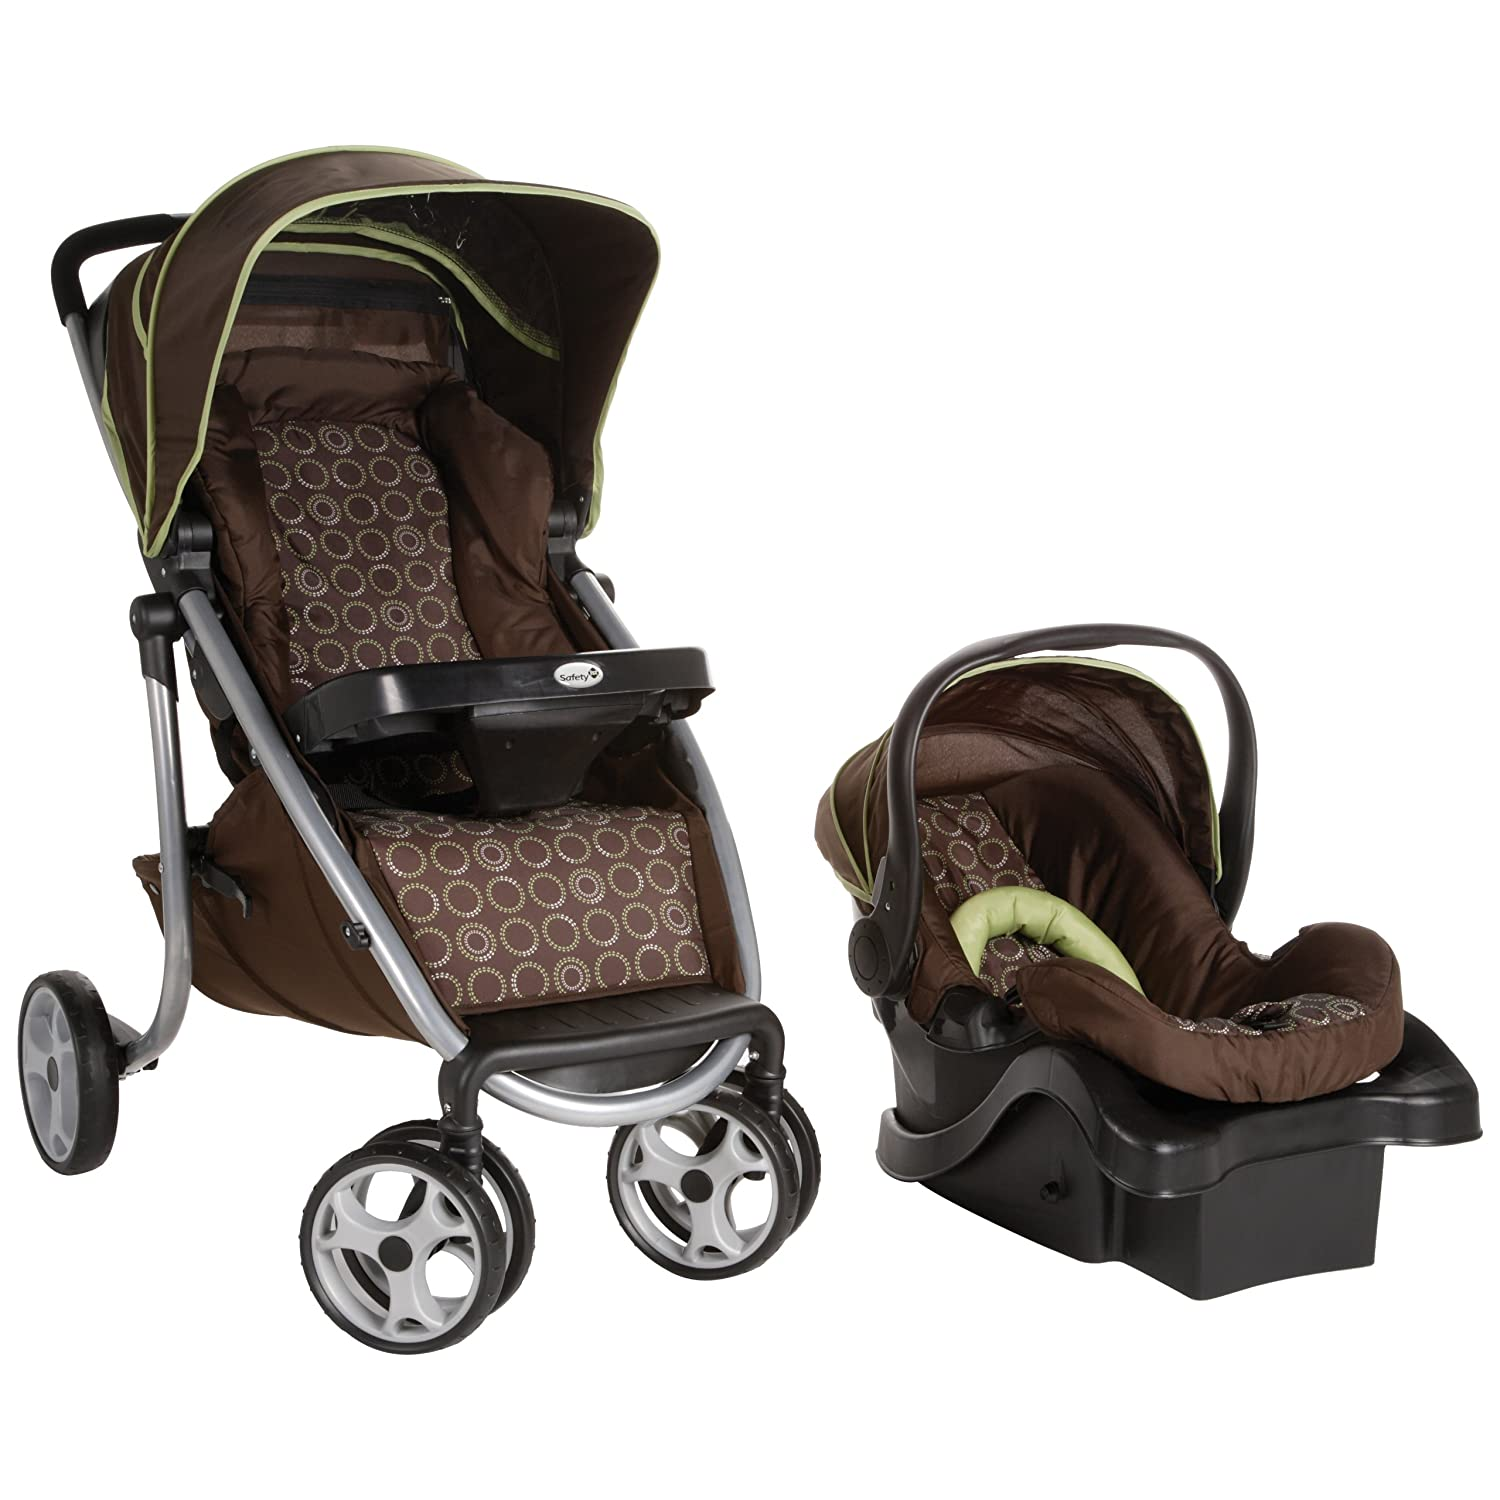 Free Baby Manuals Safety 1st Sleek Ride Lx Travel System